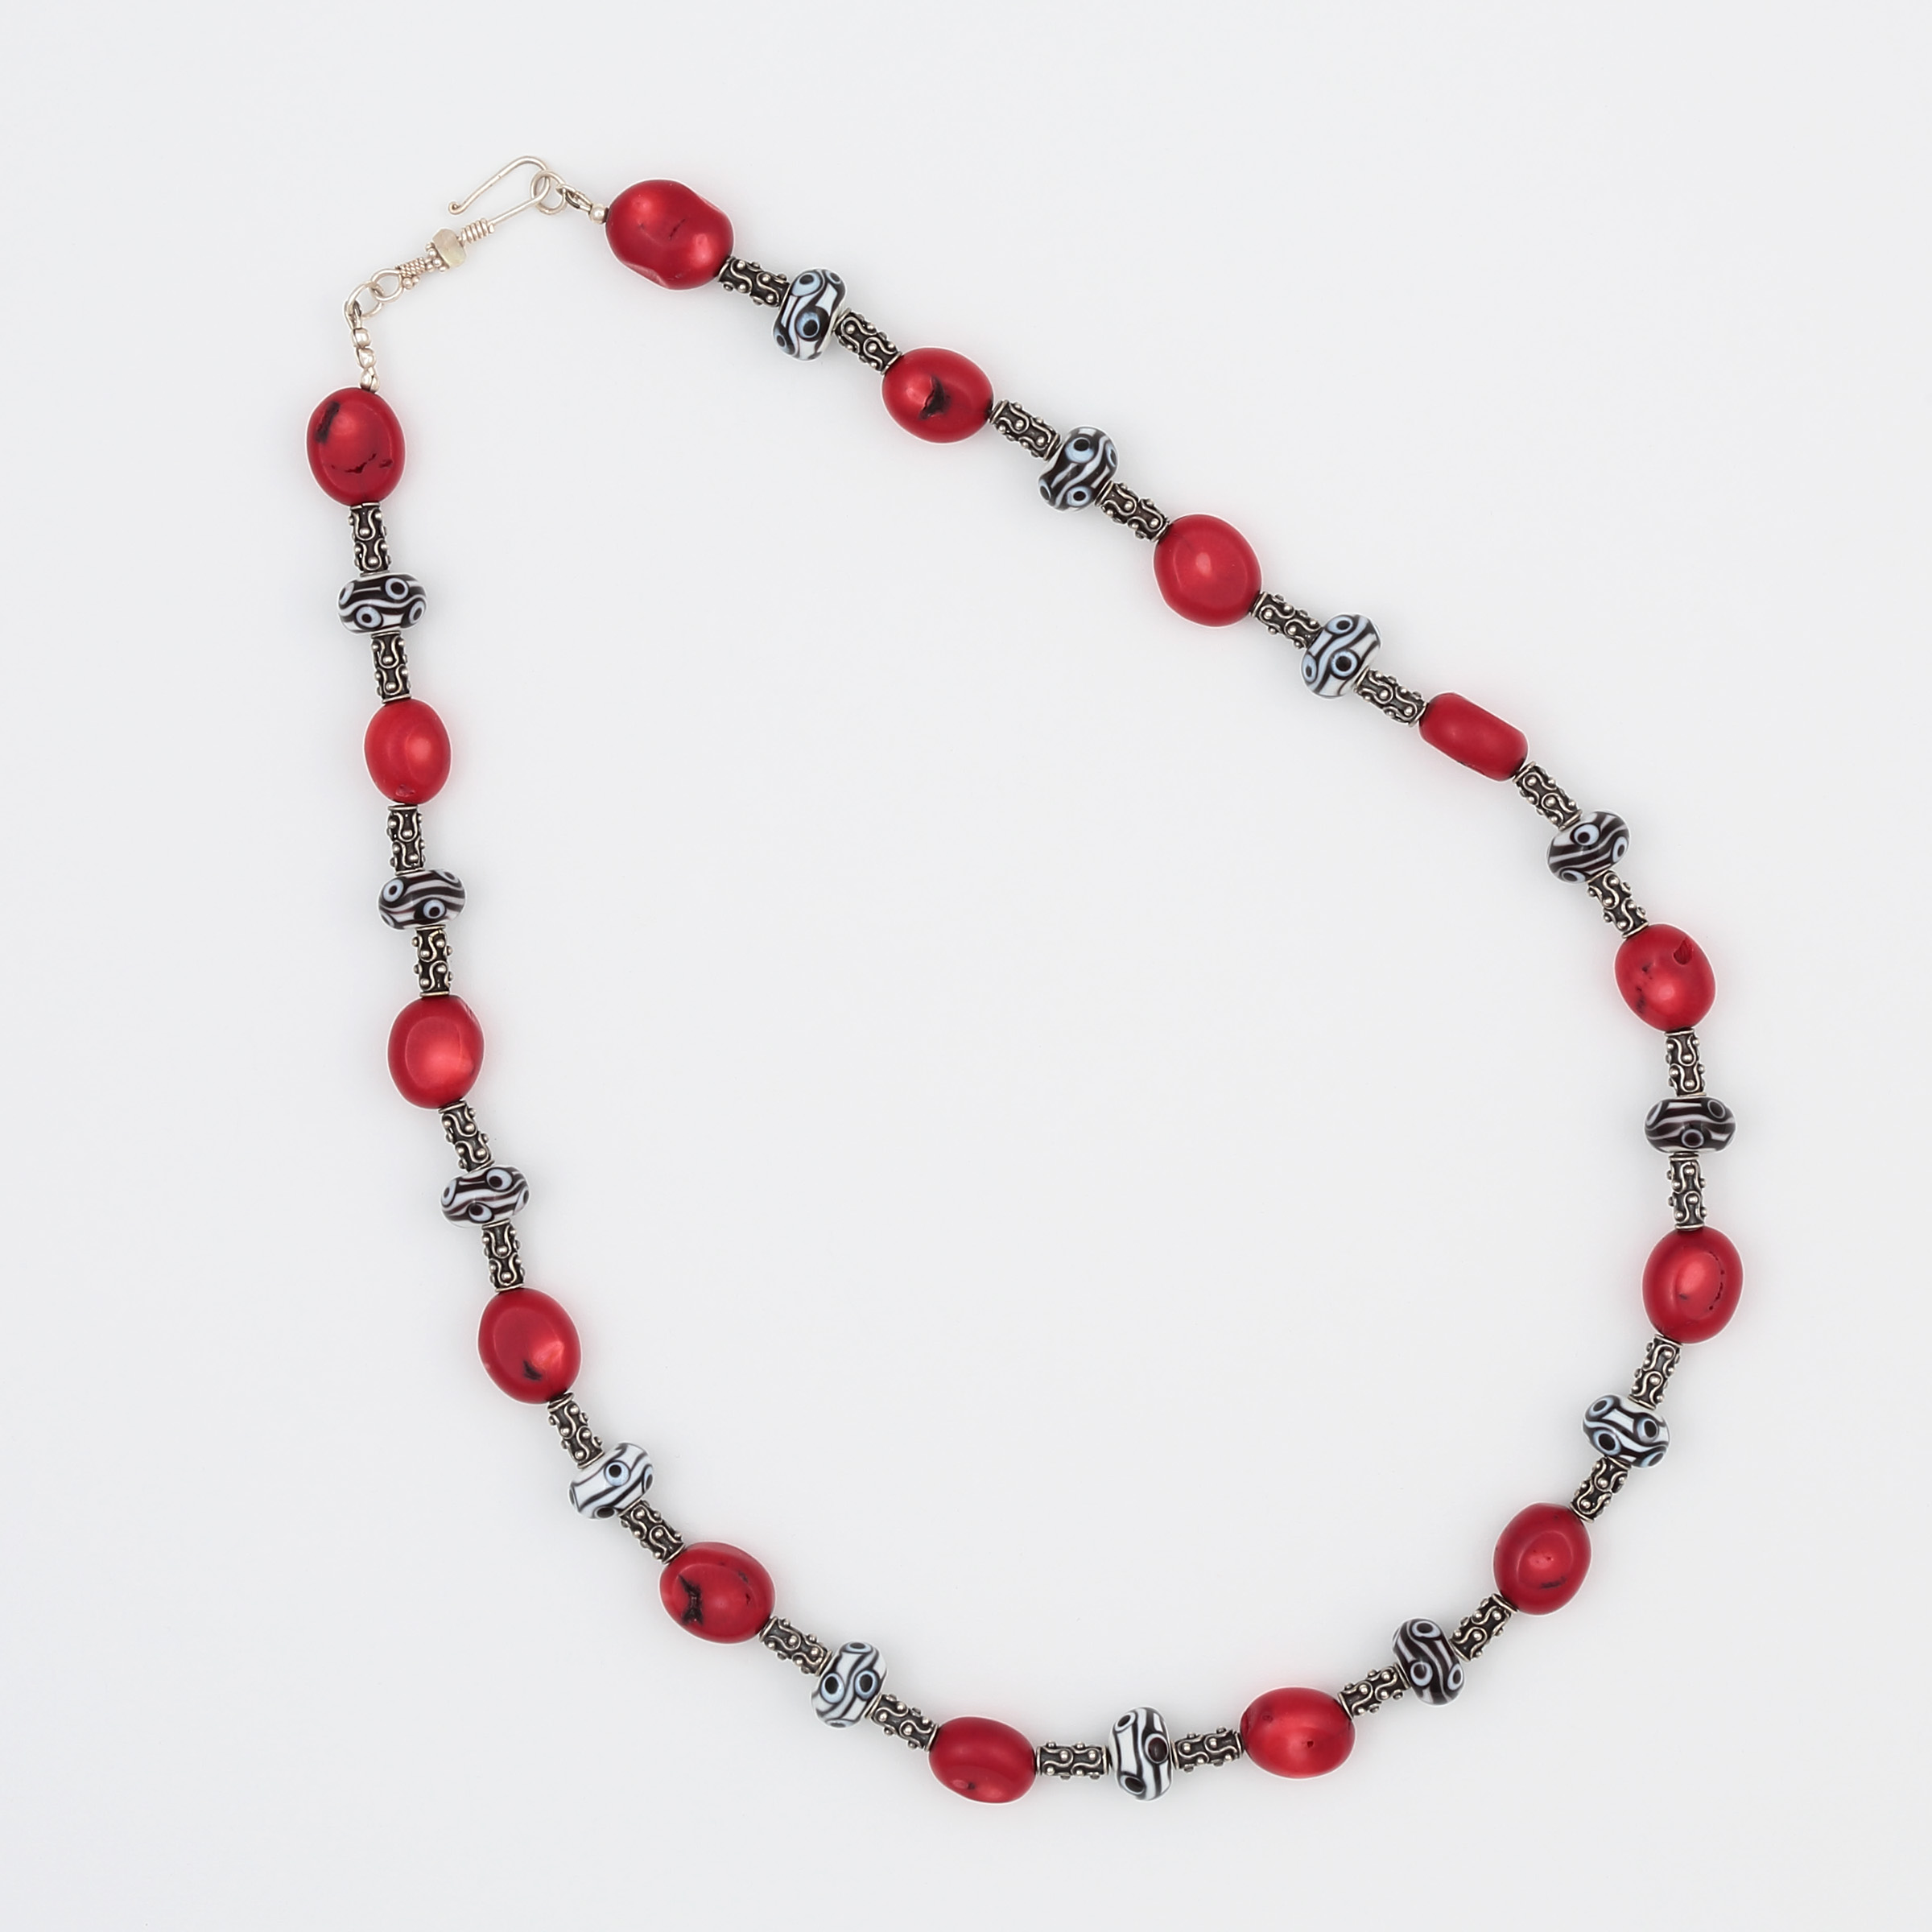 Handmade black and white art glass necklace with red coral beads and sterling silver